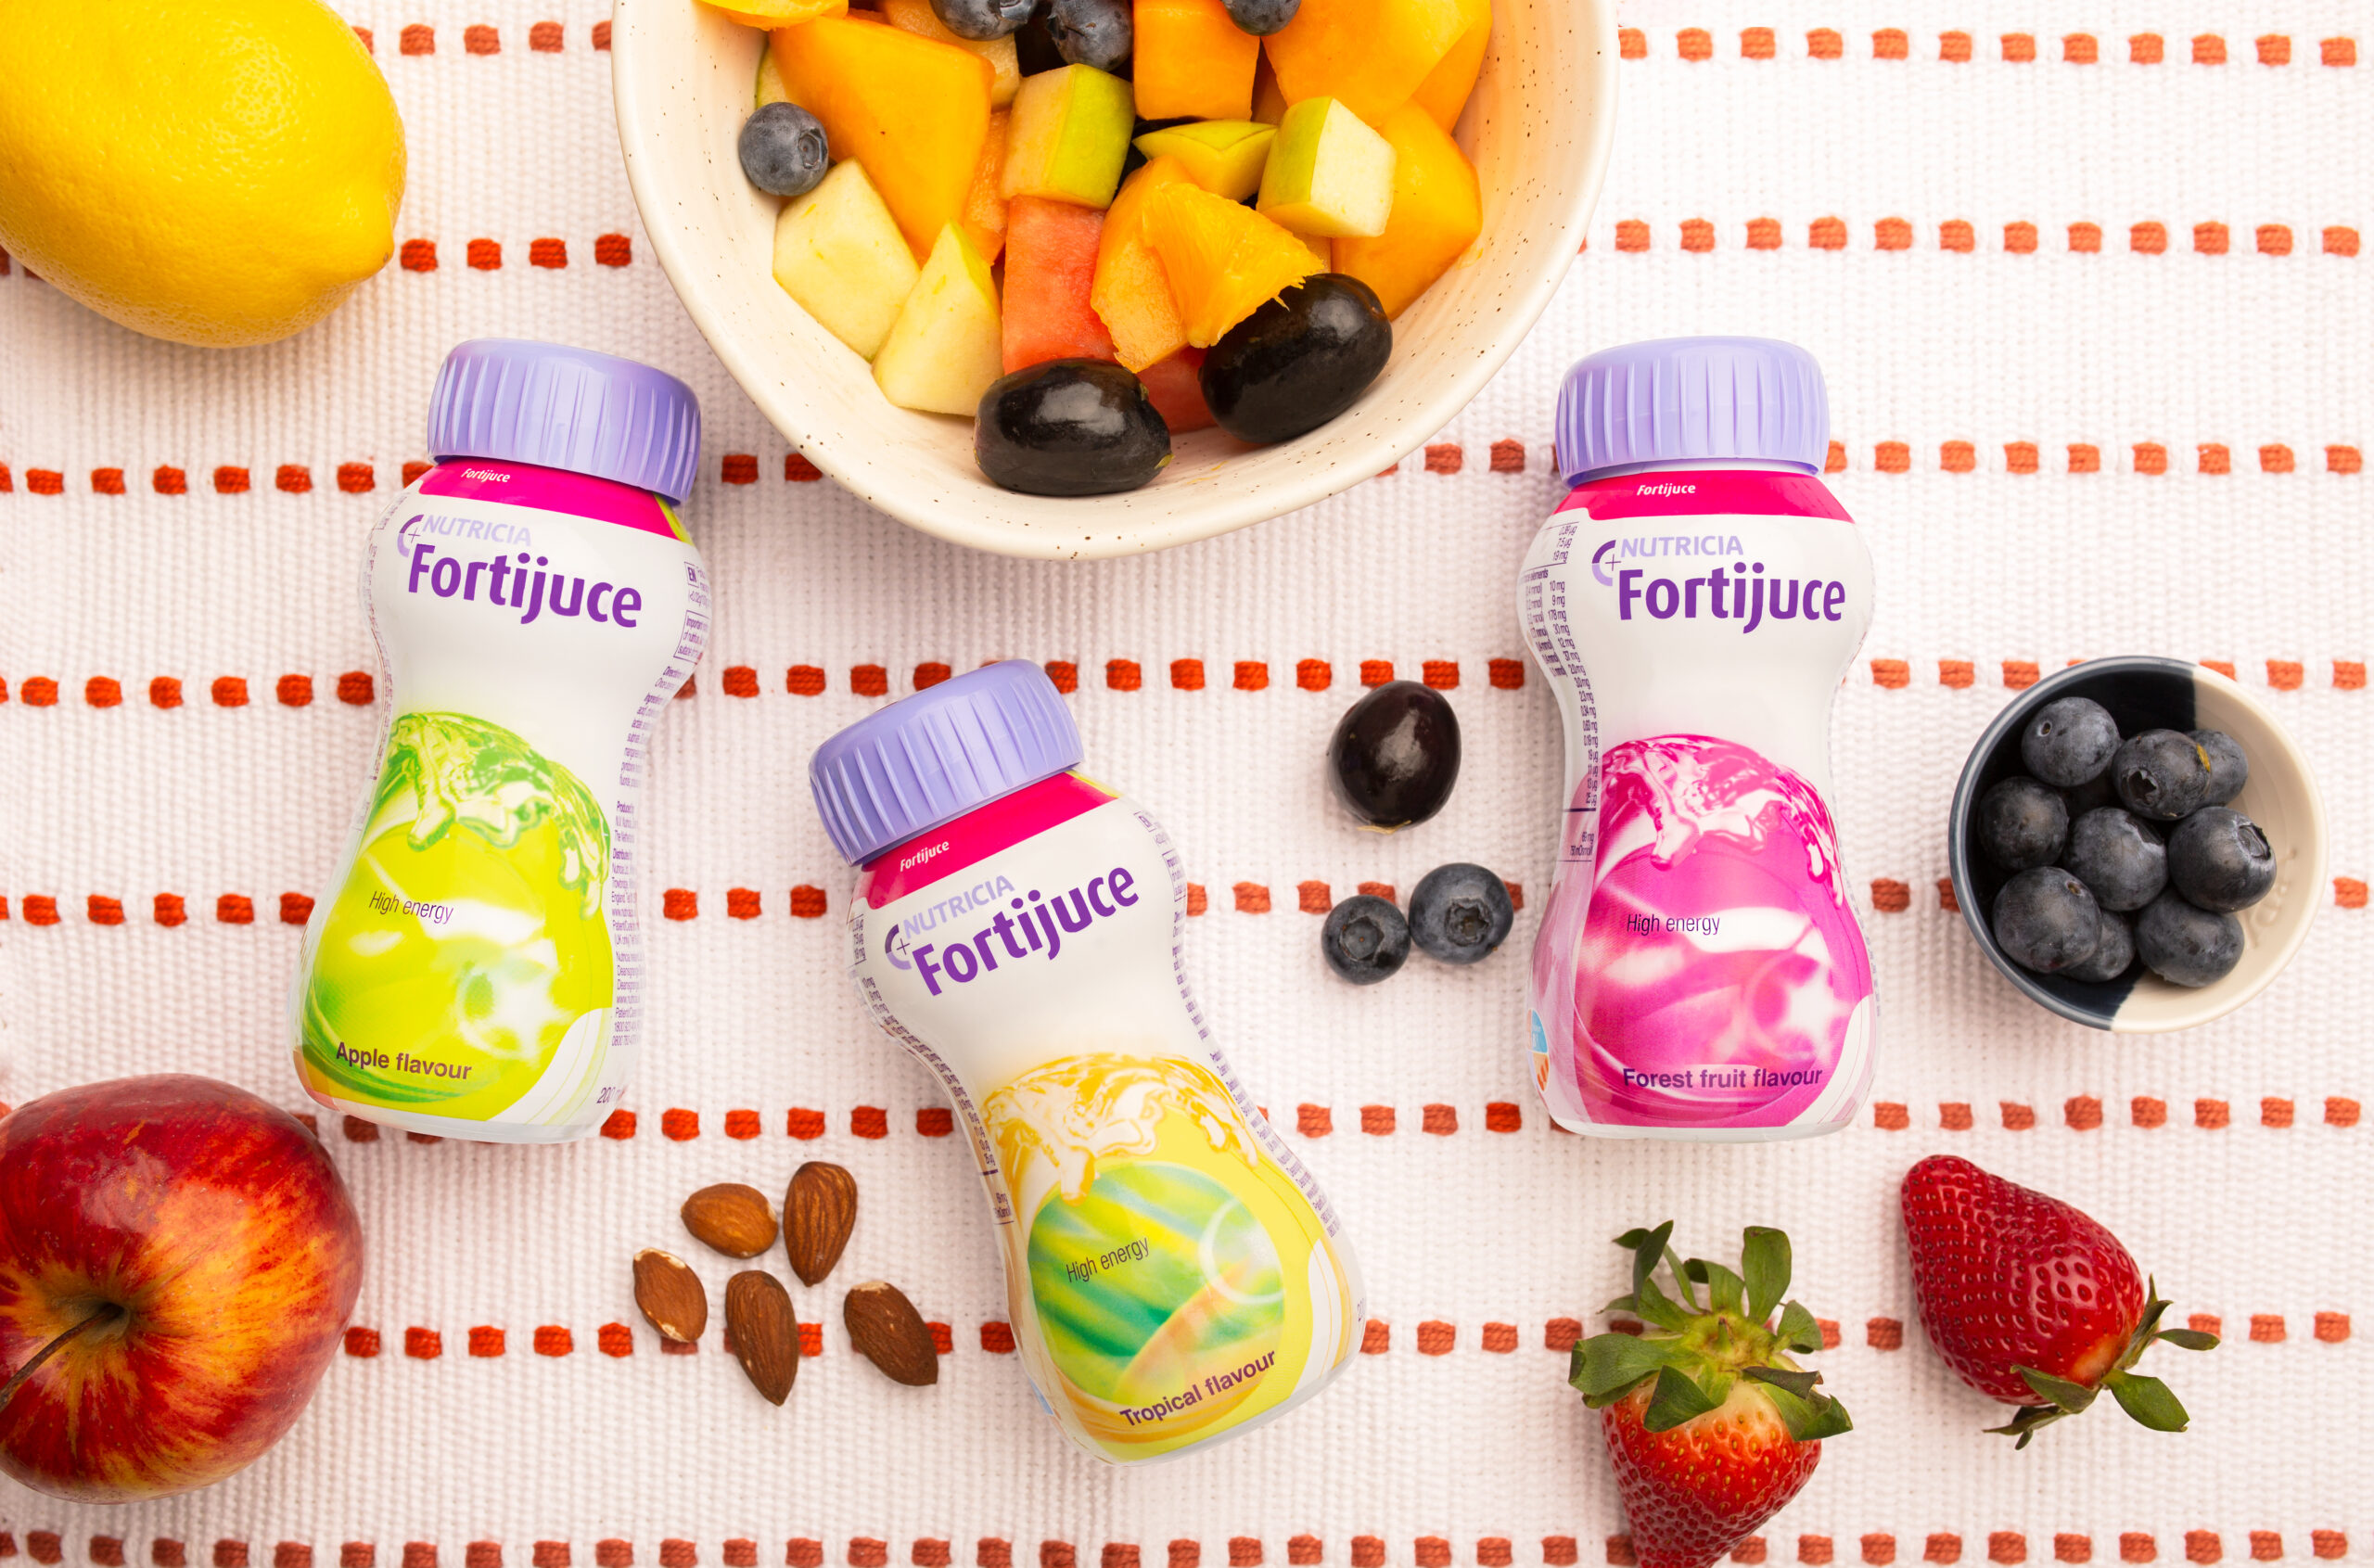 Fortijuice 3 flavours, apple, tropical and forest fruit